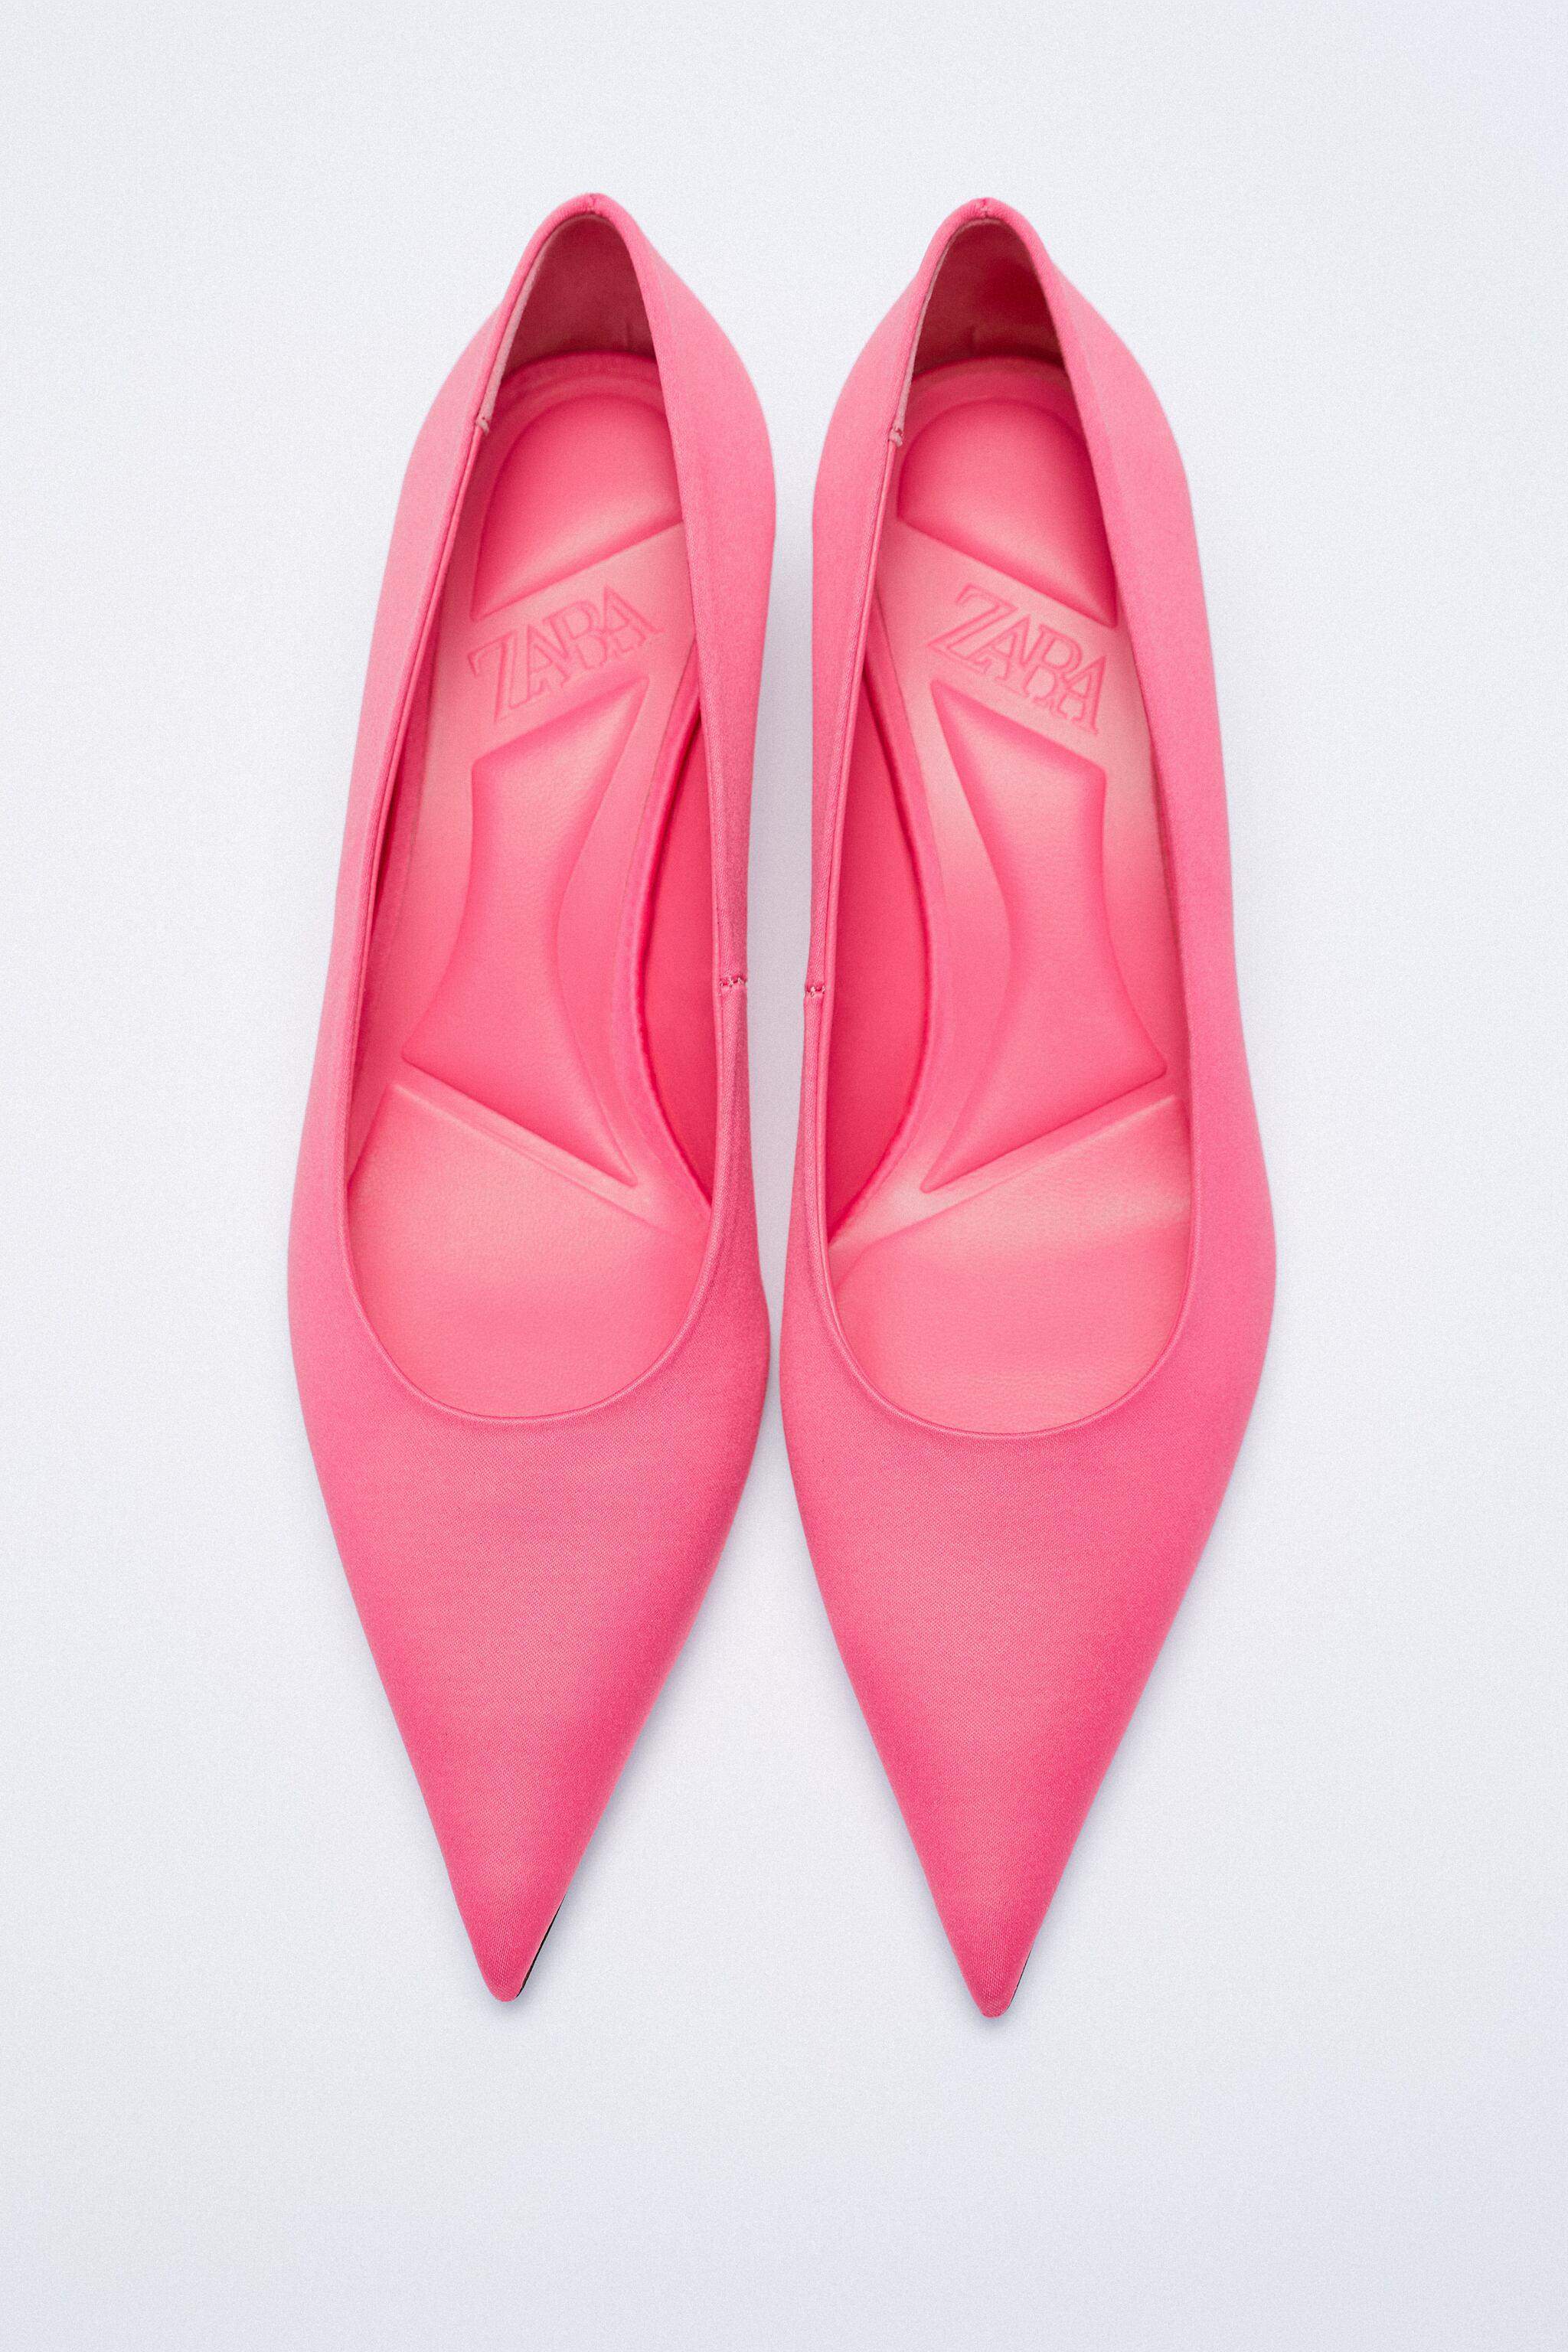 SATIN EFFECT POINTED TOE HEELS 9